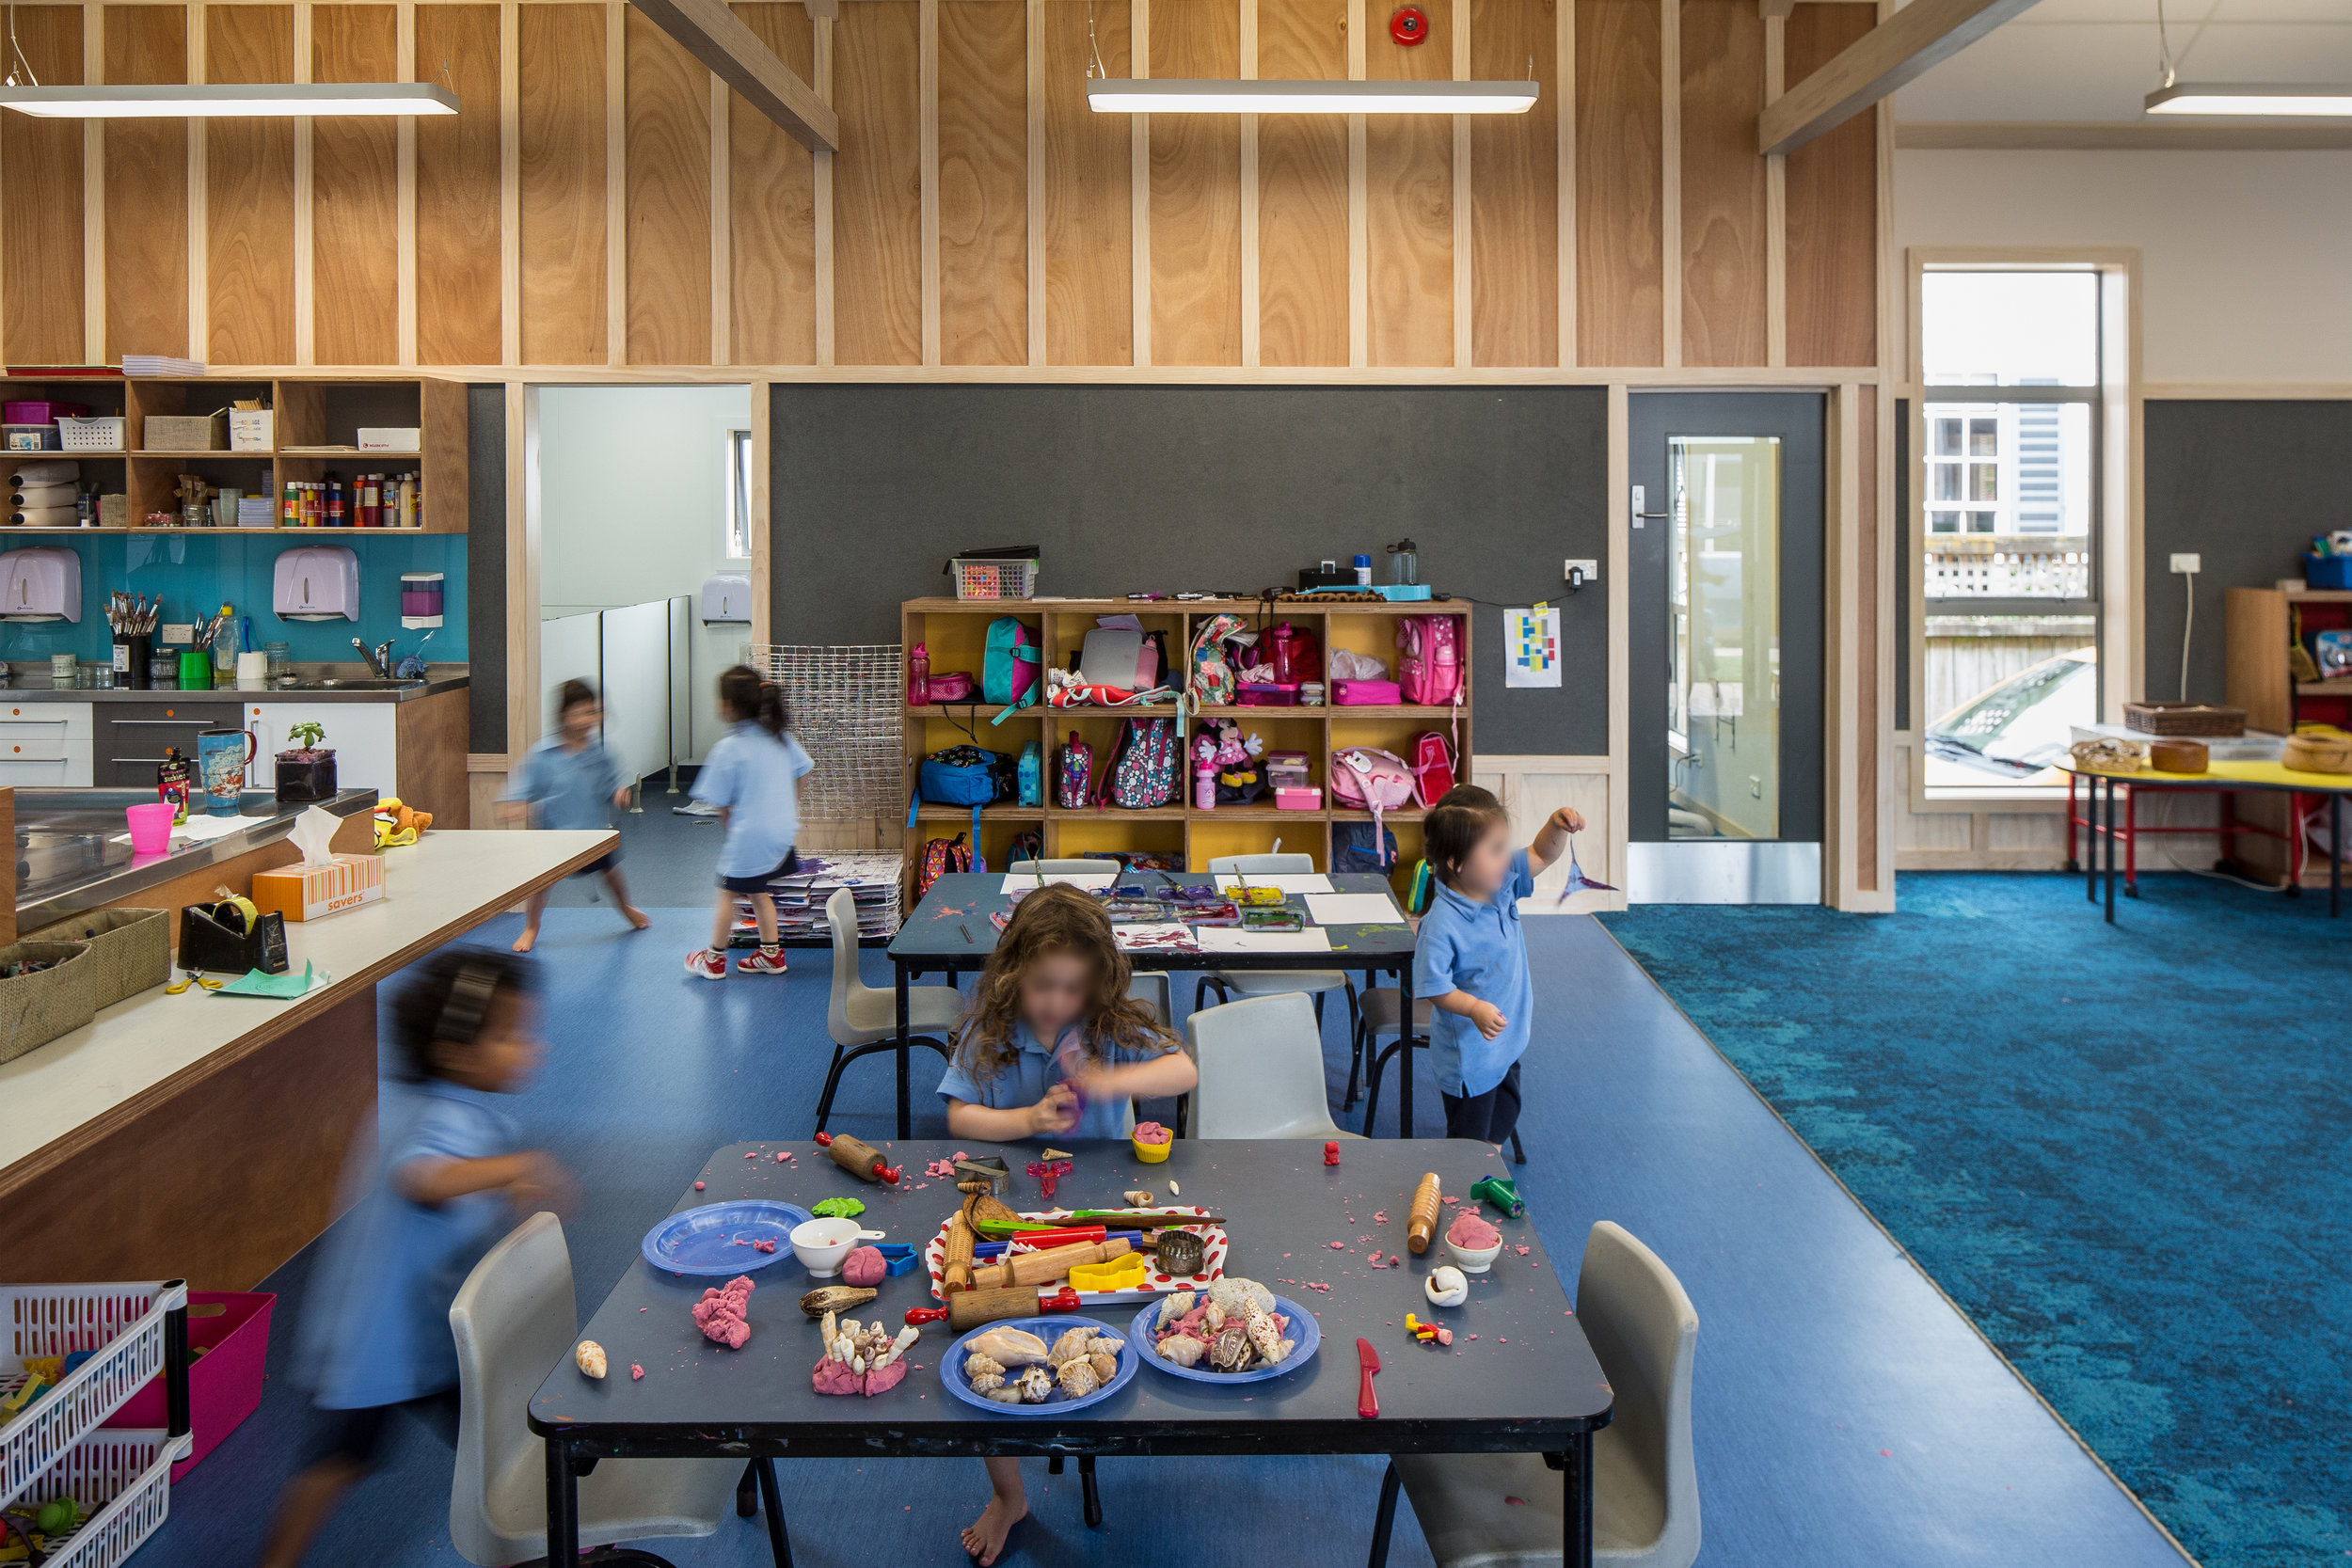 PRESCHOOL RECEIVES COMMENDATION   Our new Preschool facility at Queen Margaret College has been awarded a commendation by Learning Environments NZ